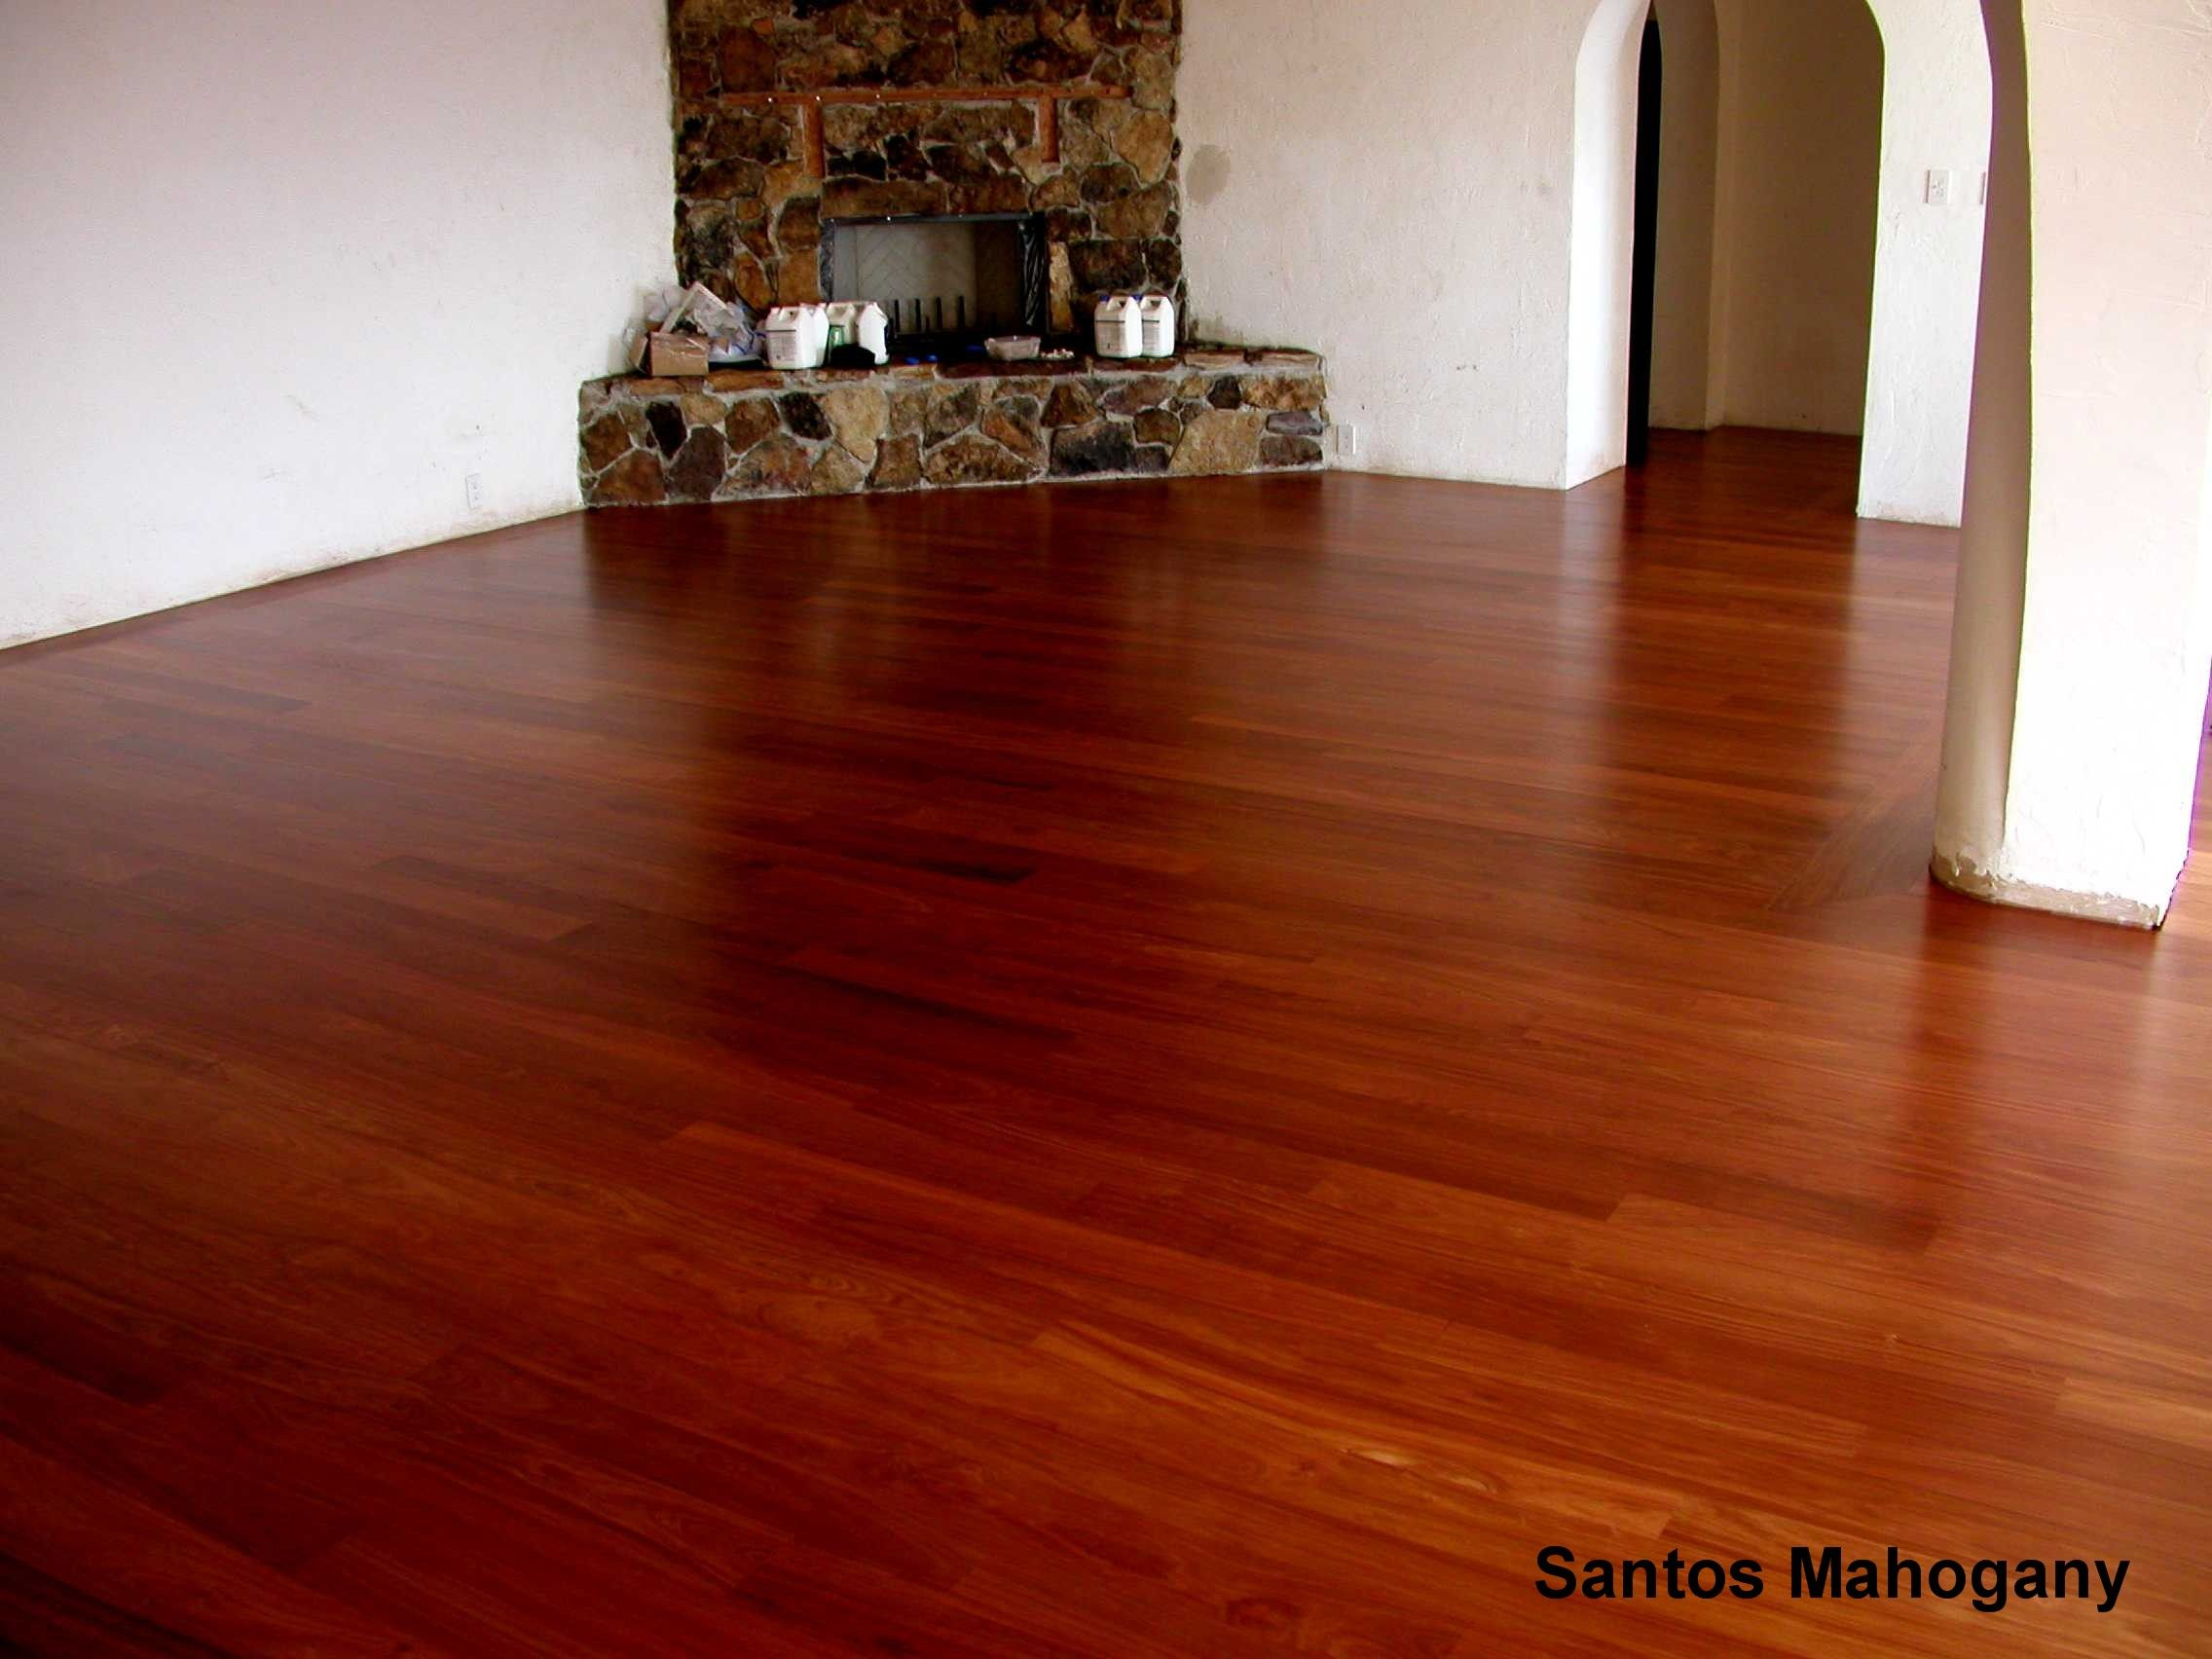 Santos mahogany floors are timeless a blue house ideas for Mahogany flooring